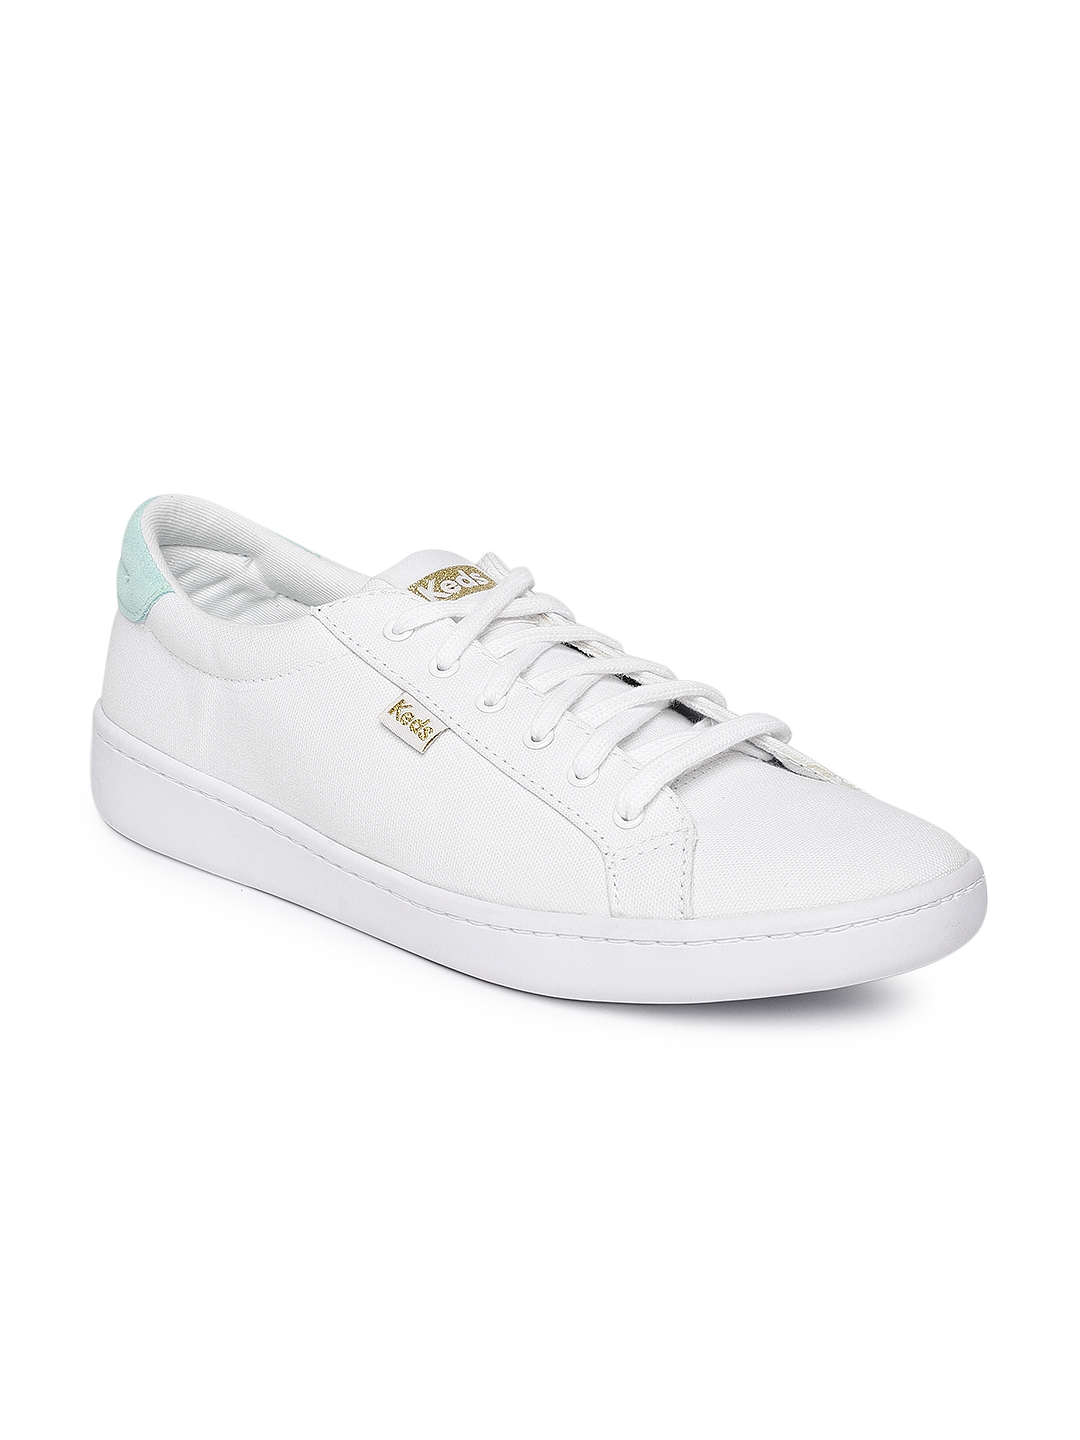 Buy Keds Women White Solid Sneakers